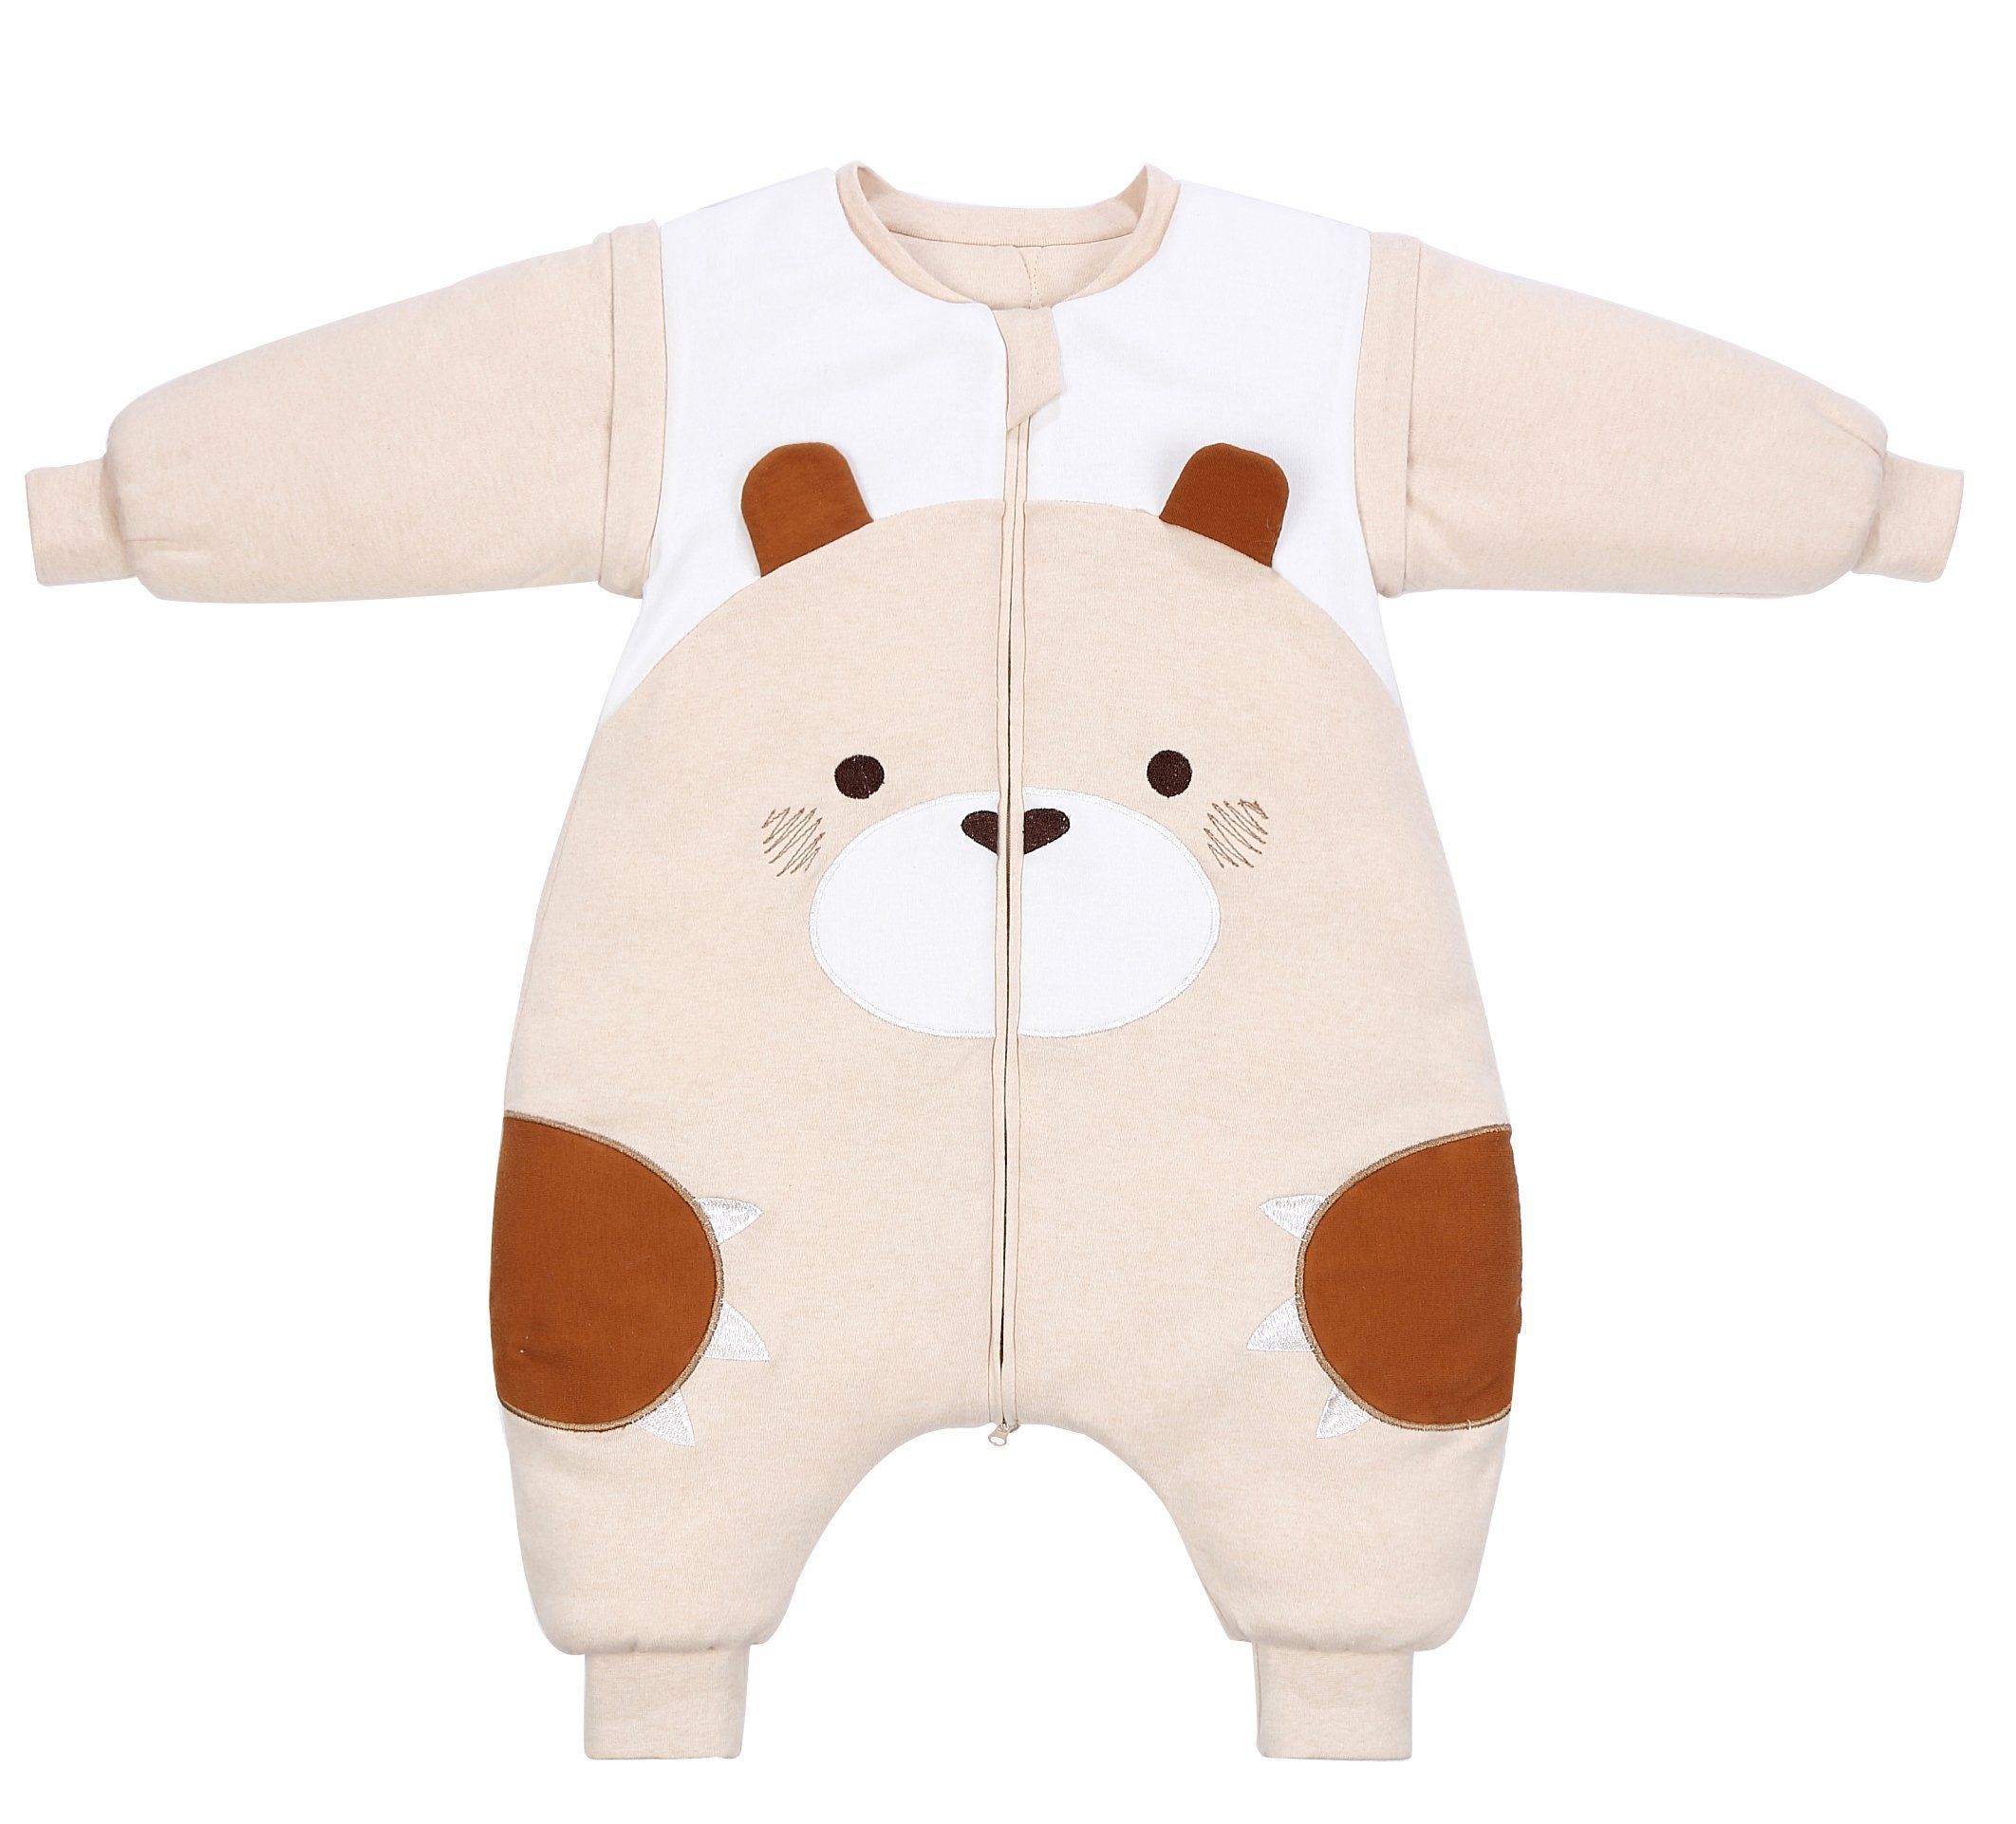 Peace Monkey Wearable Blanket Baby Sleep Sack Soft Warm Cotton Sleep Bag Pajama For Babiesm Little B In 2020 Baby Girl Clothes Cute Baby Clothes Cute Baby Girl Outfits